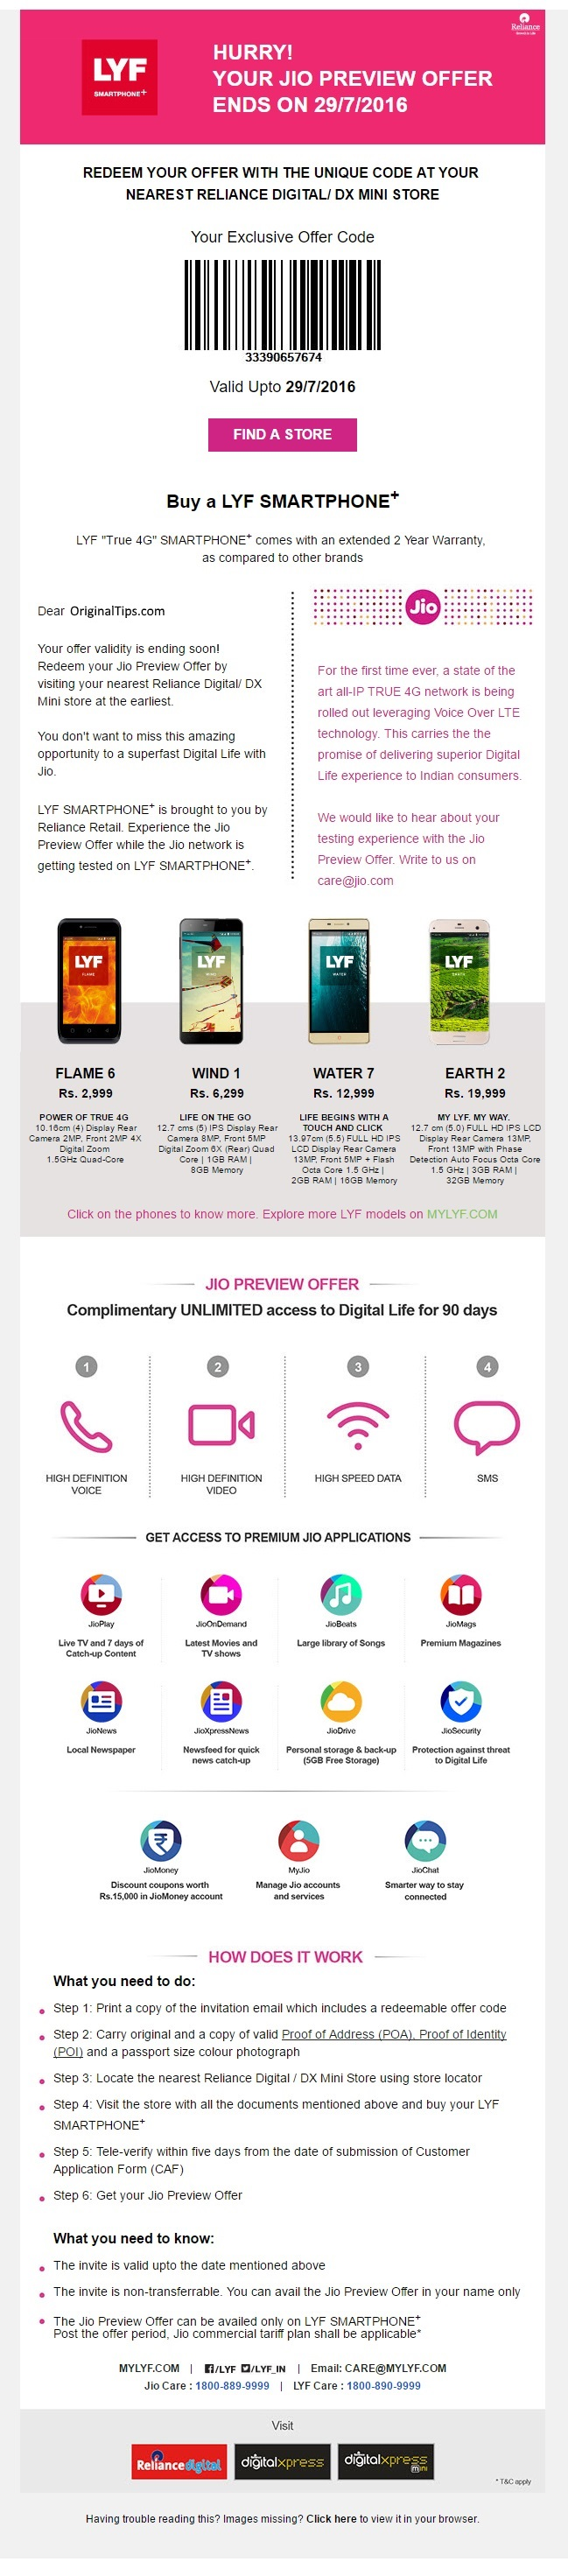 Reliance Jio LYF Mobile Phone Preview Offer